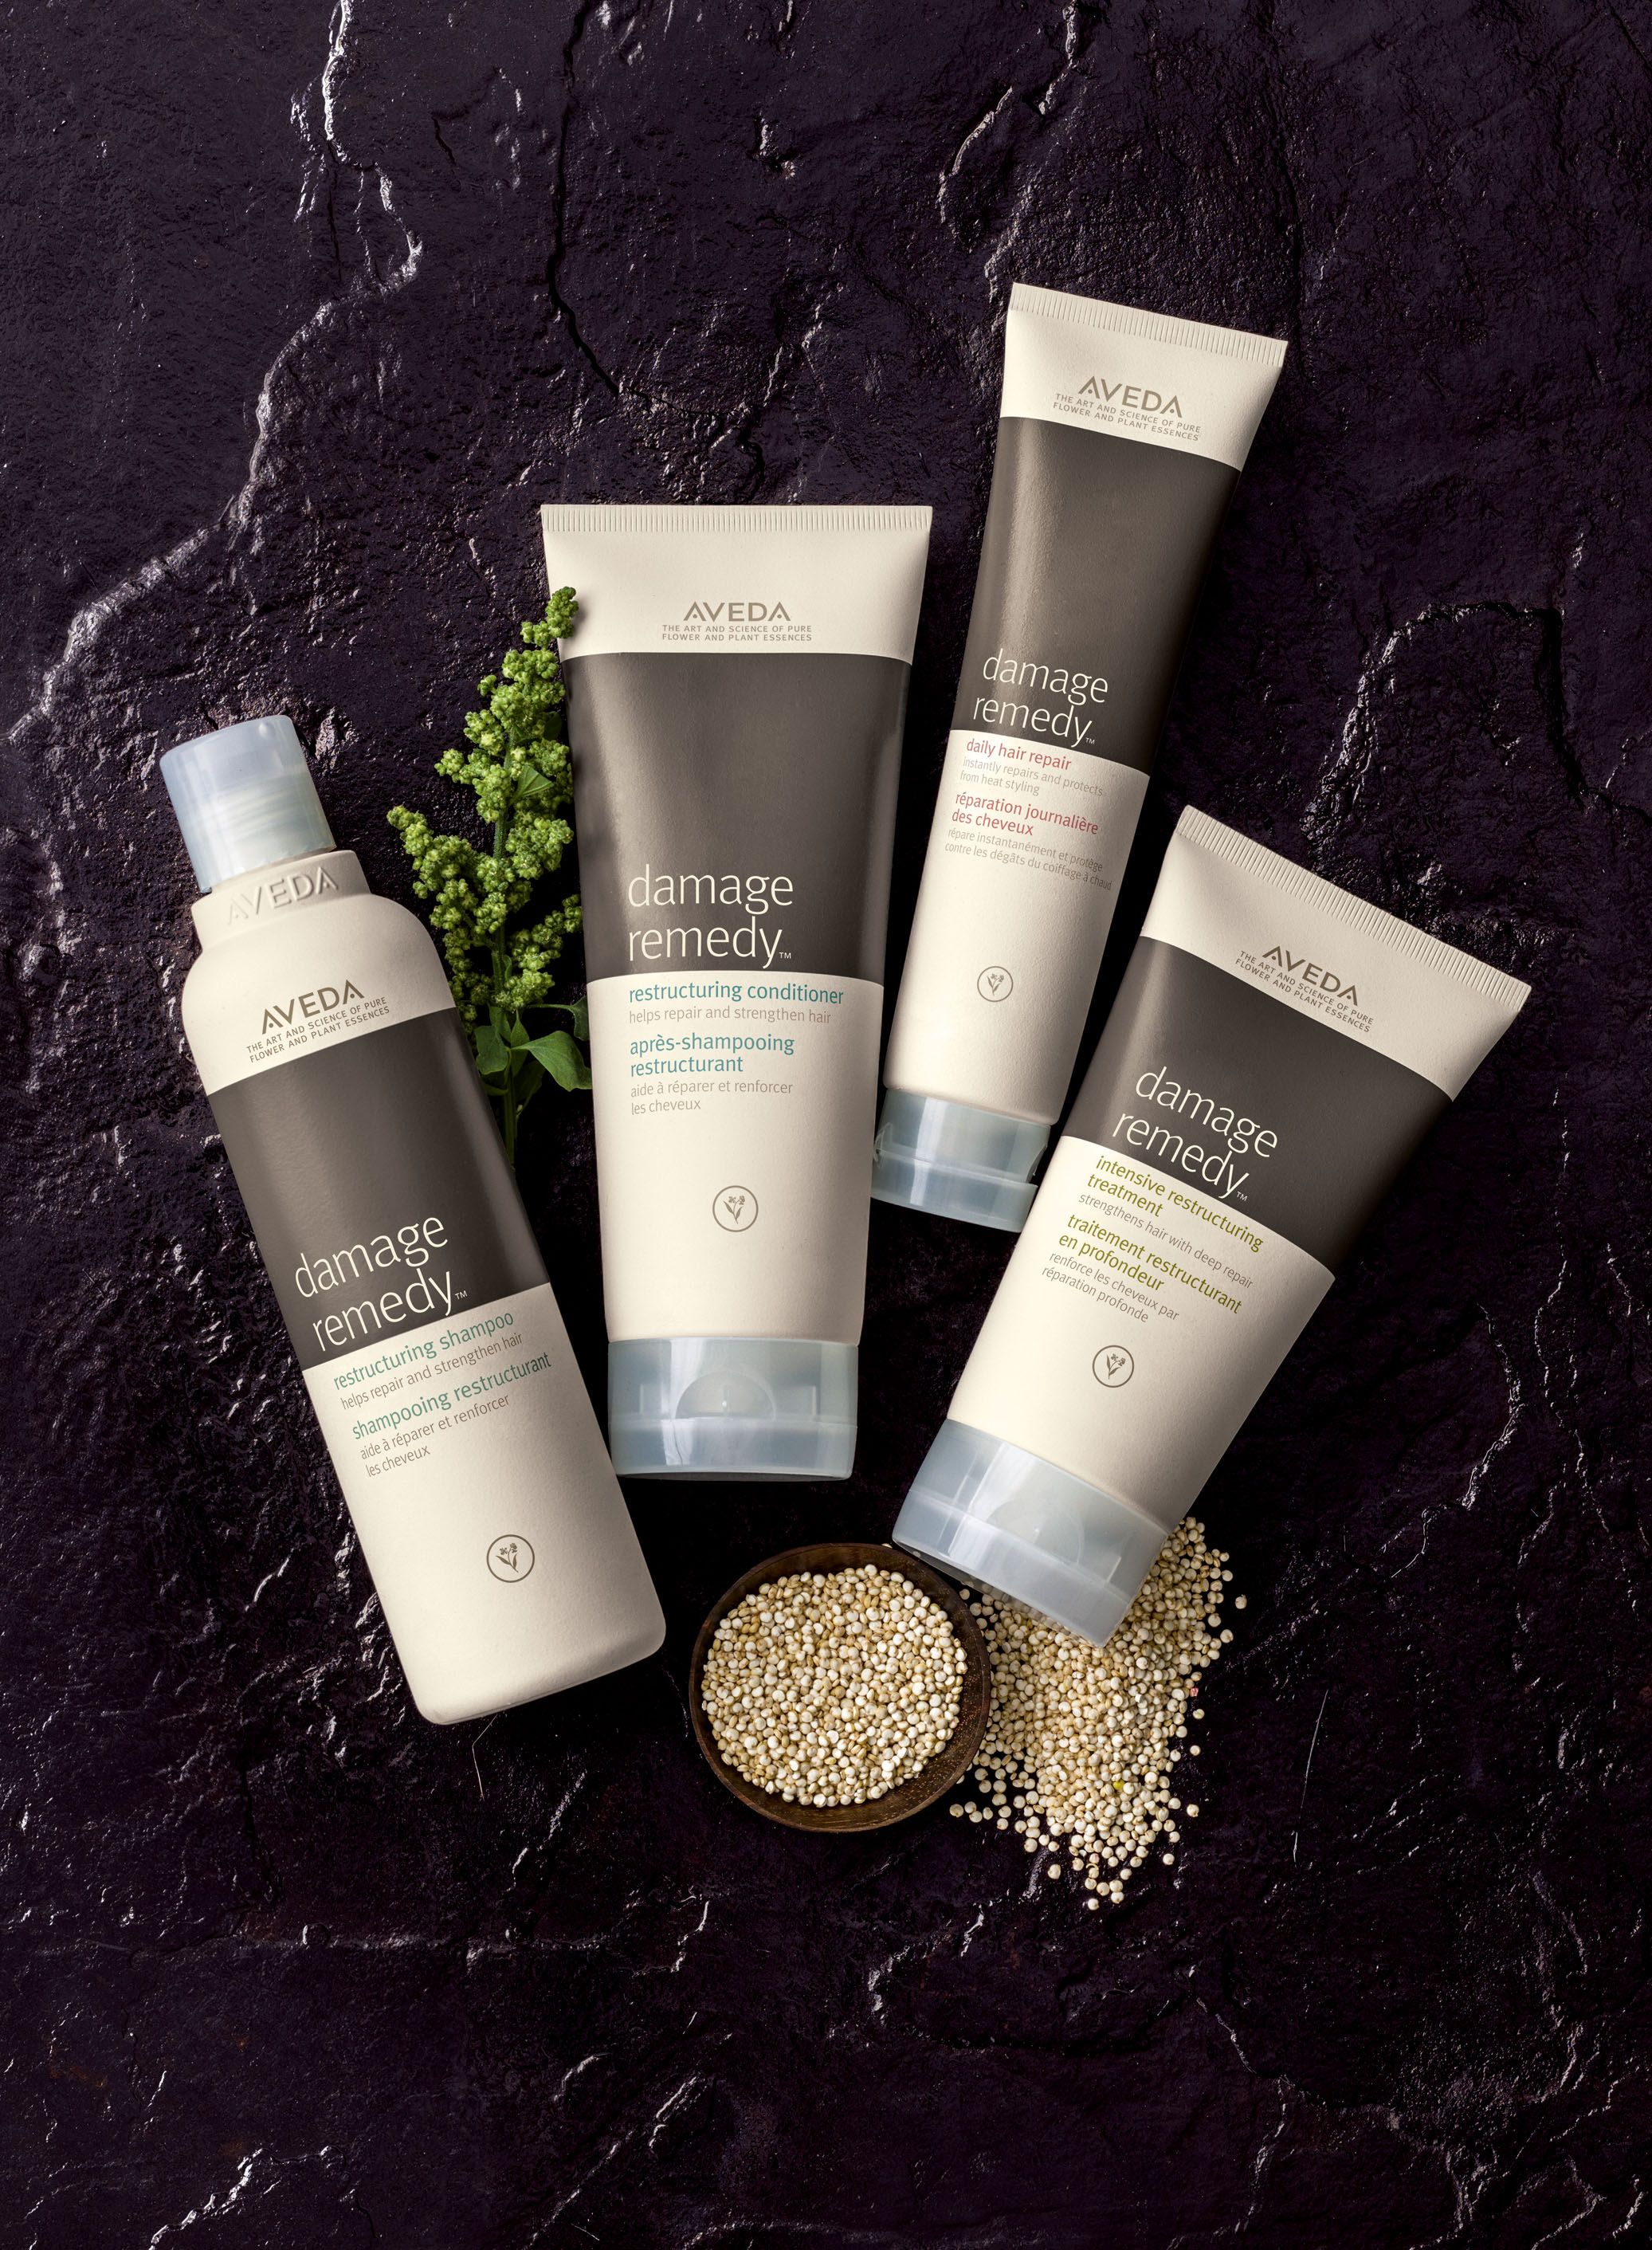 Aveda Dry Remedy Moisturizing Shampoo 8 5 Oz And Conditioner 6 7oz Duo Set Check This Awesome Produc Shampoo Free Moisturizing Shampoo Sulfate Free Shampoo